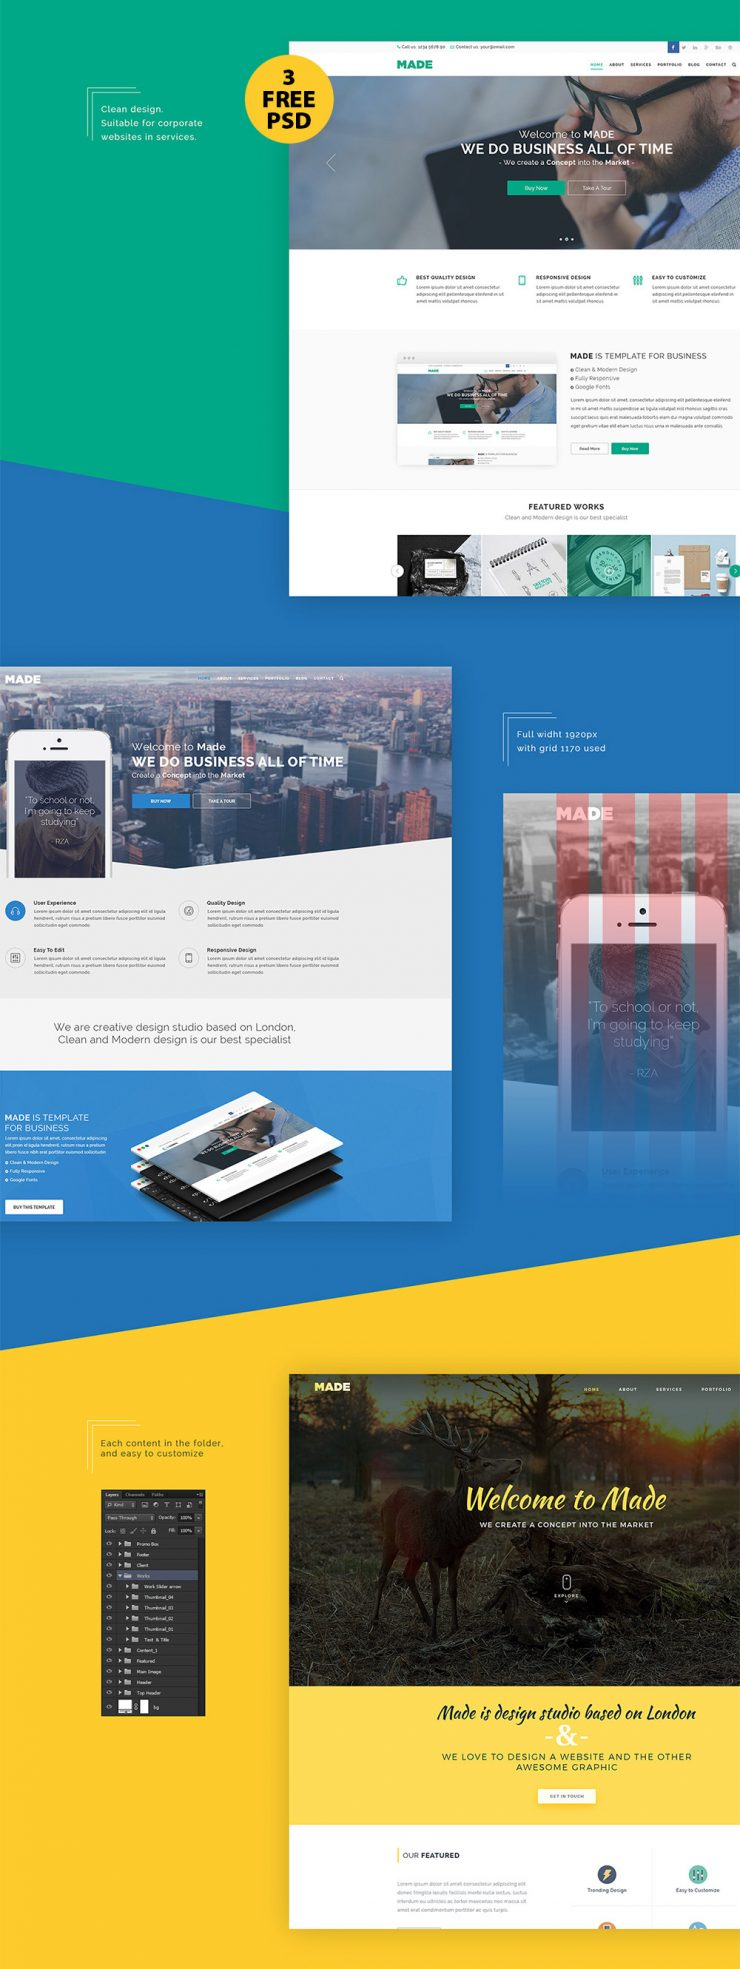 Clean corporate website design free psd template download for Website layout design software free download